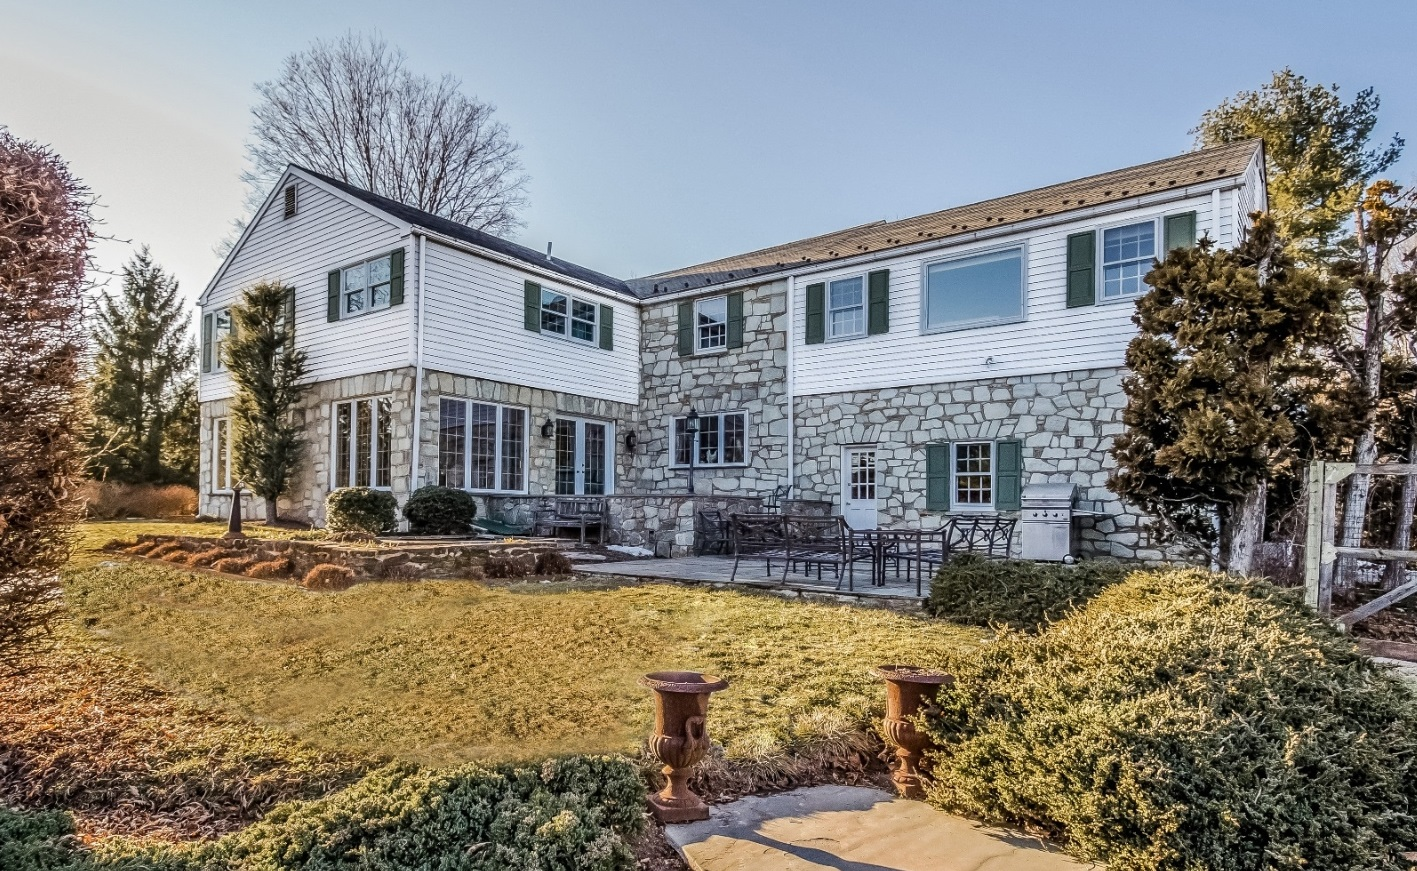 New Hope/Solebury PA Stone Home for Sale Steve Walny REALTOR®